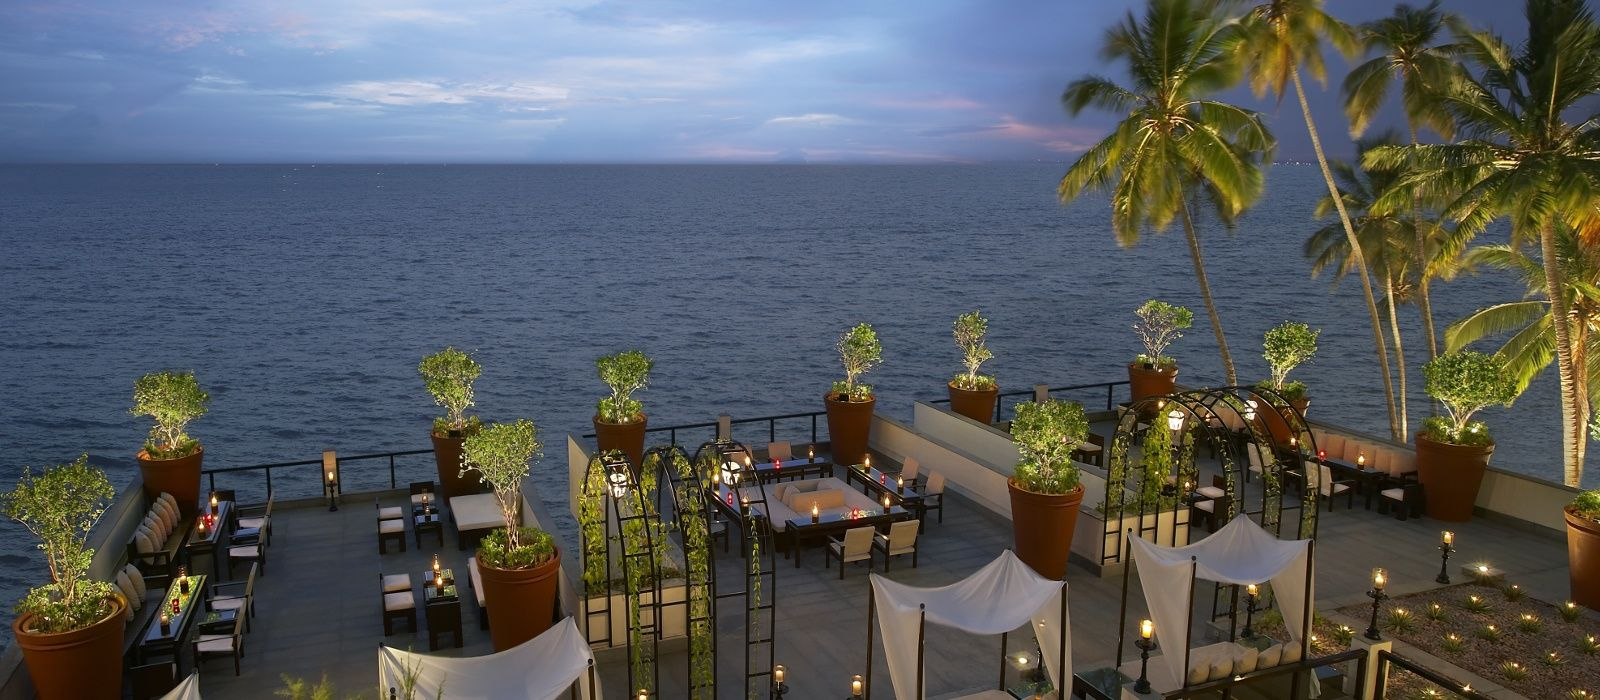 Hotel The Leela Kovalam Islands & Beaches